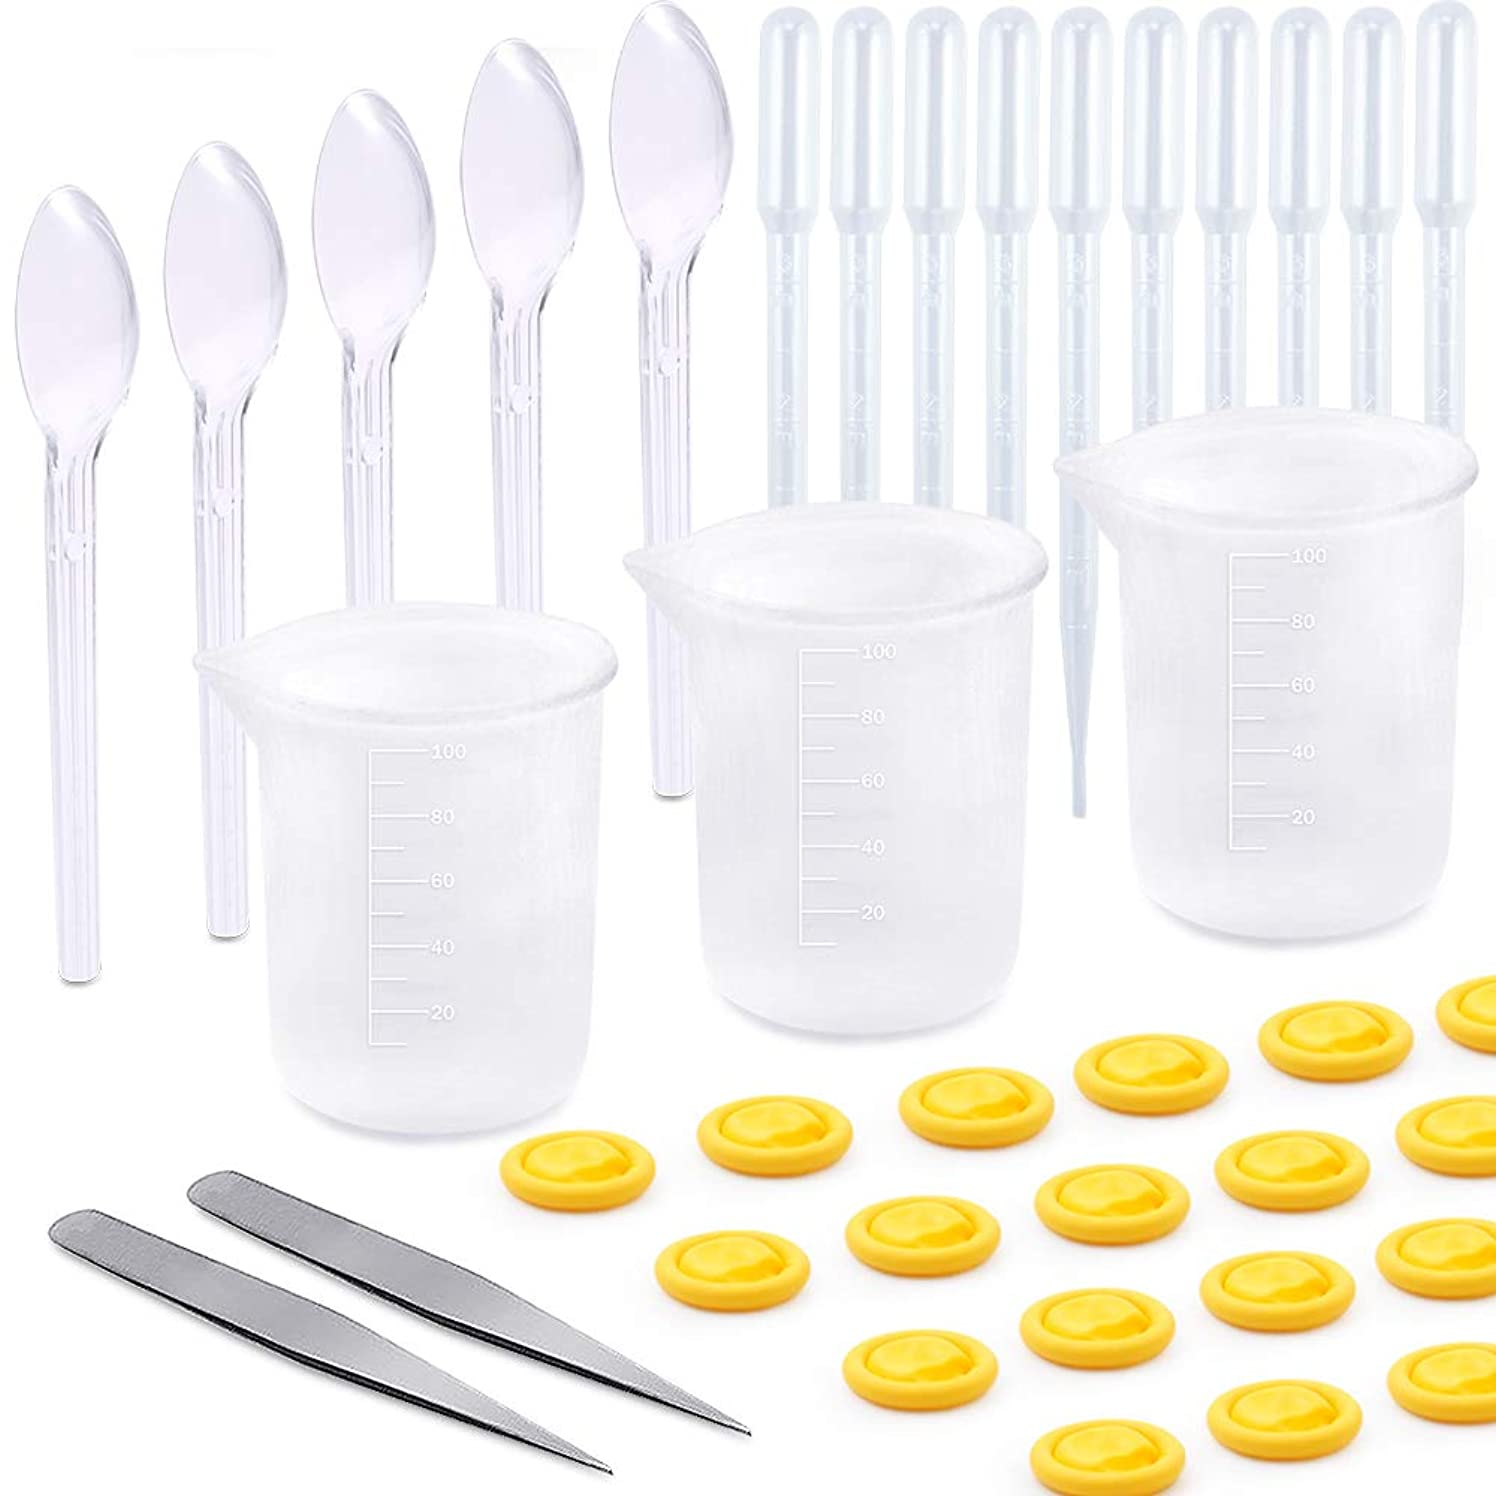 Sntieecr 50 Pieces Resin Cups Casting Tools Kit, Including 100ml Silicone Measuring Cups, Spoons, Dropping Pipettes, Tweezer and Finger Cots Gloves for Epoxy Resin, Casting Molds, DIY Art and Craft